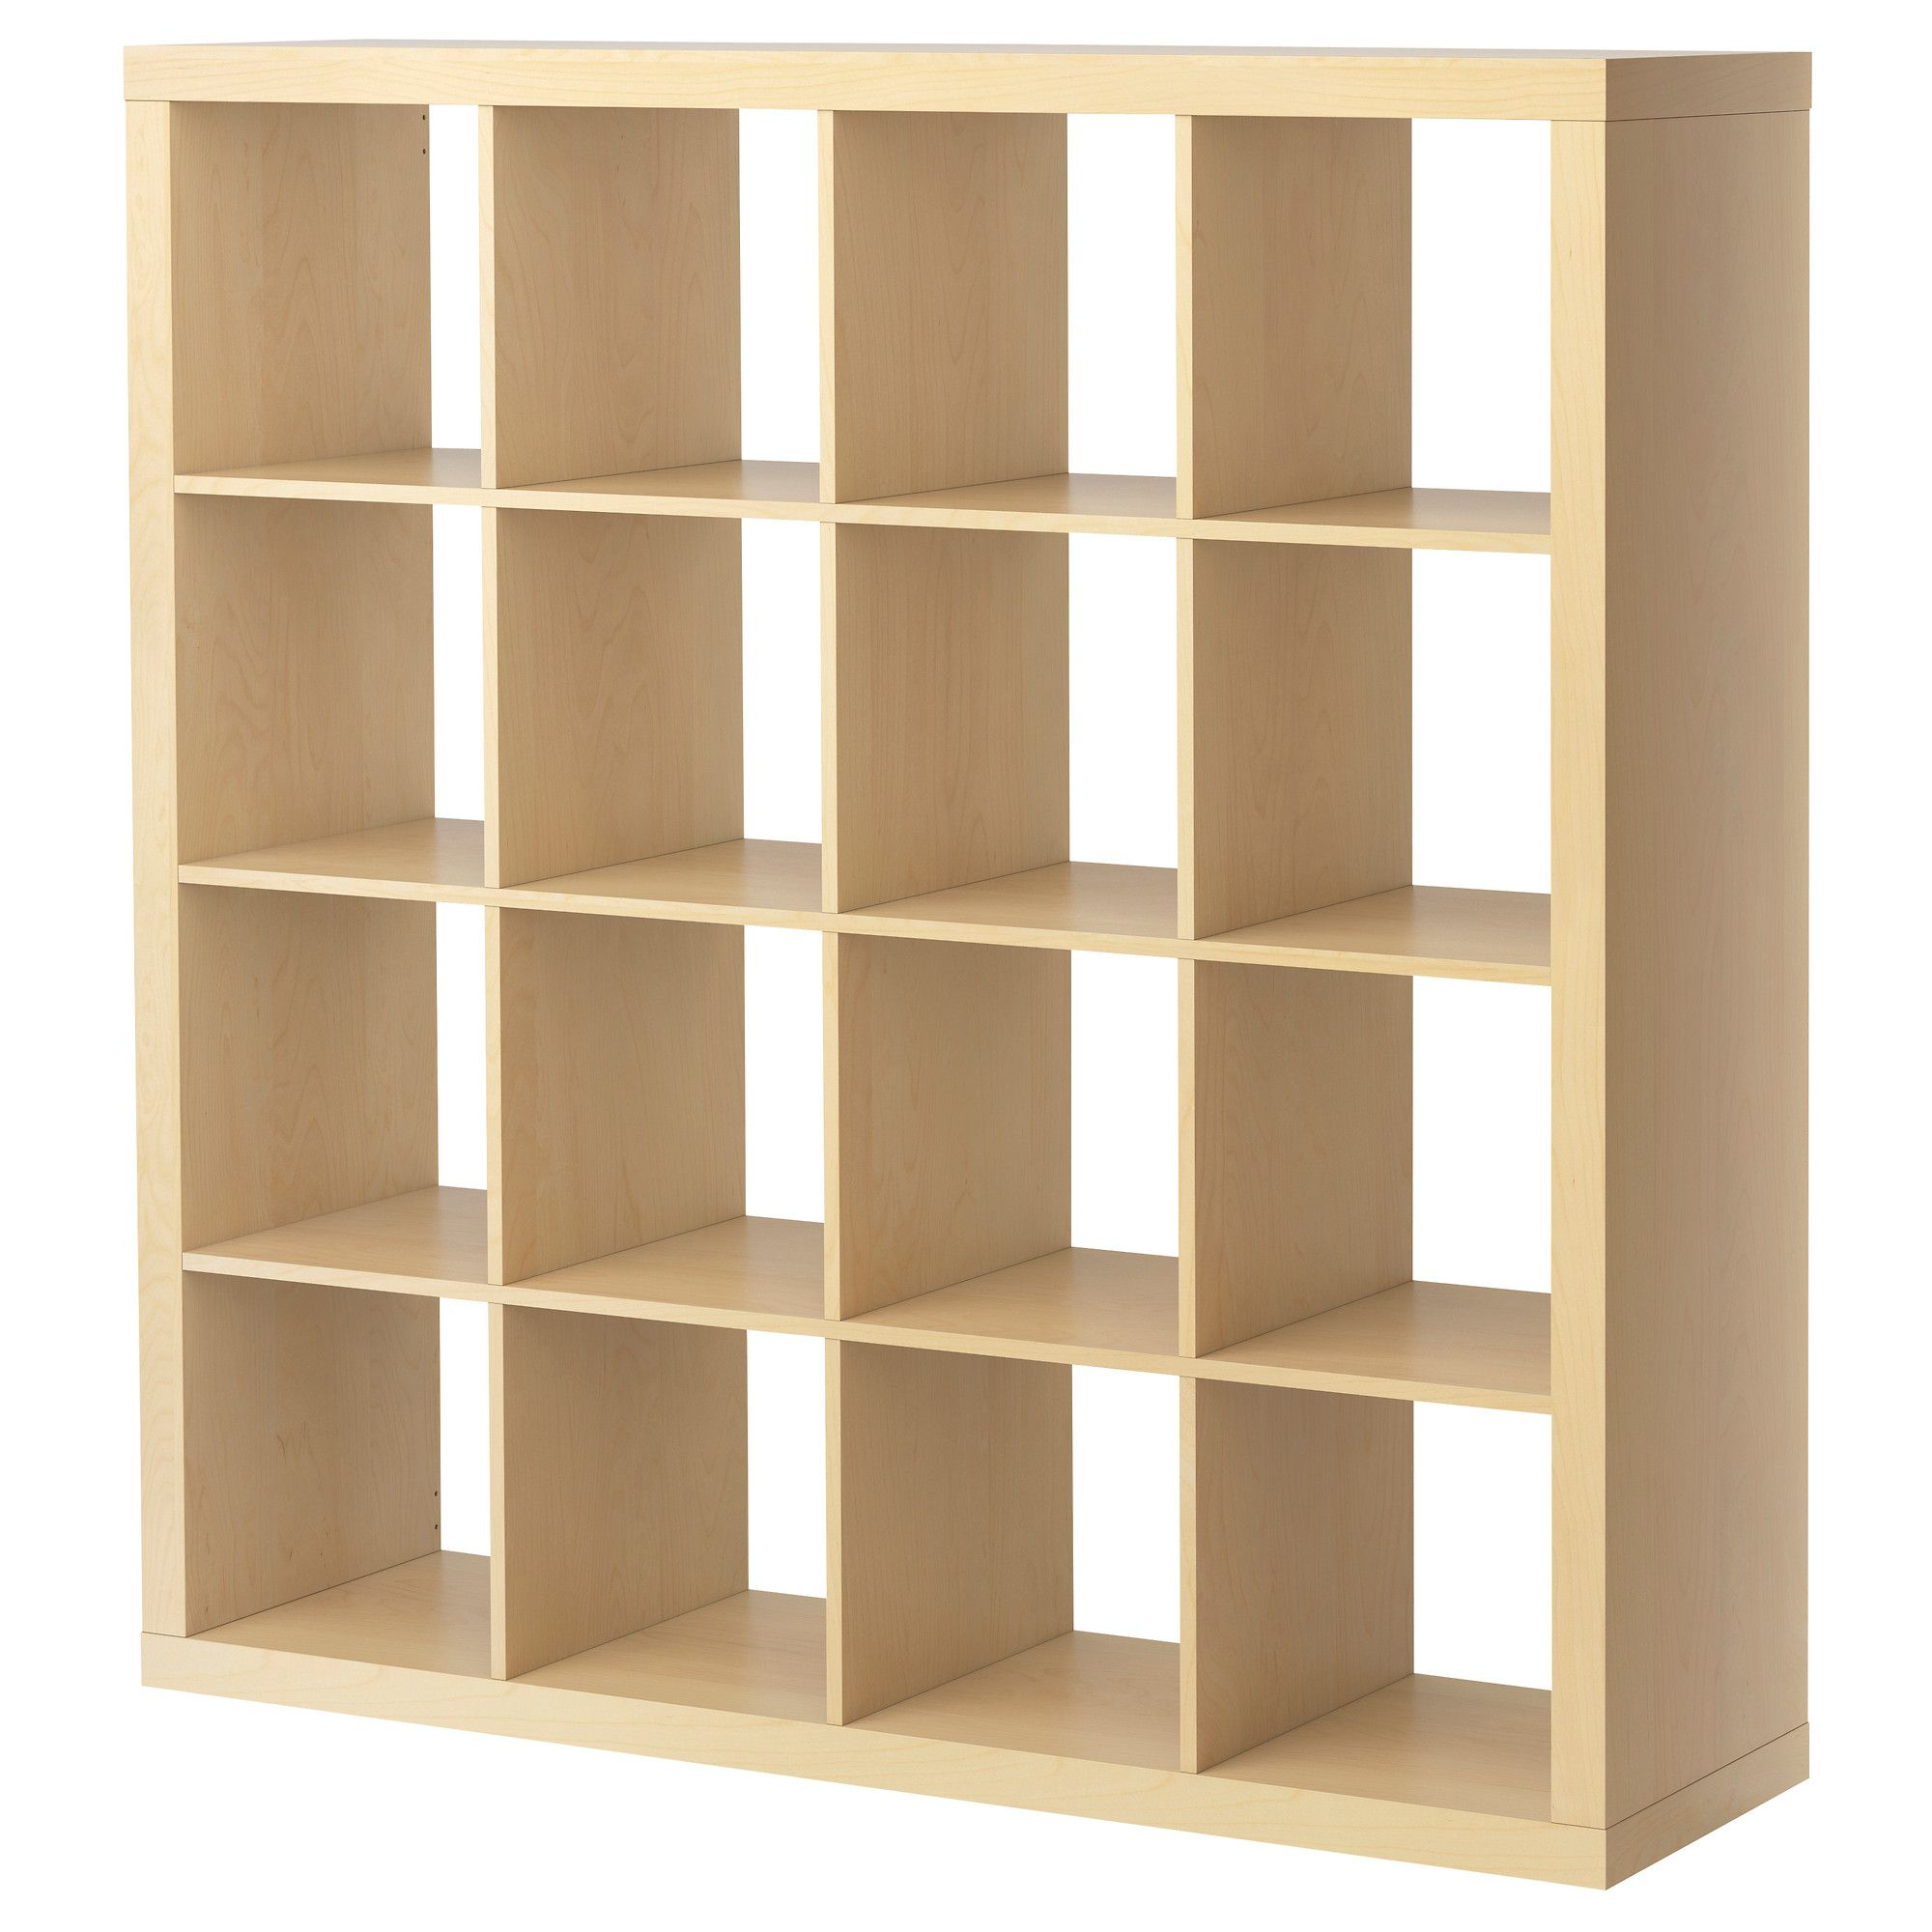 SMÅRASSEL Box with lid, white | Craft rooms, Bookcases and Shelving